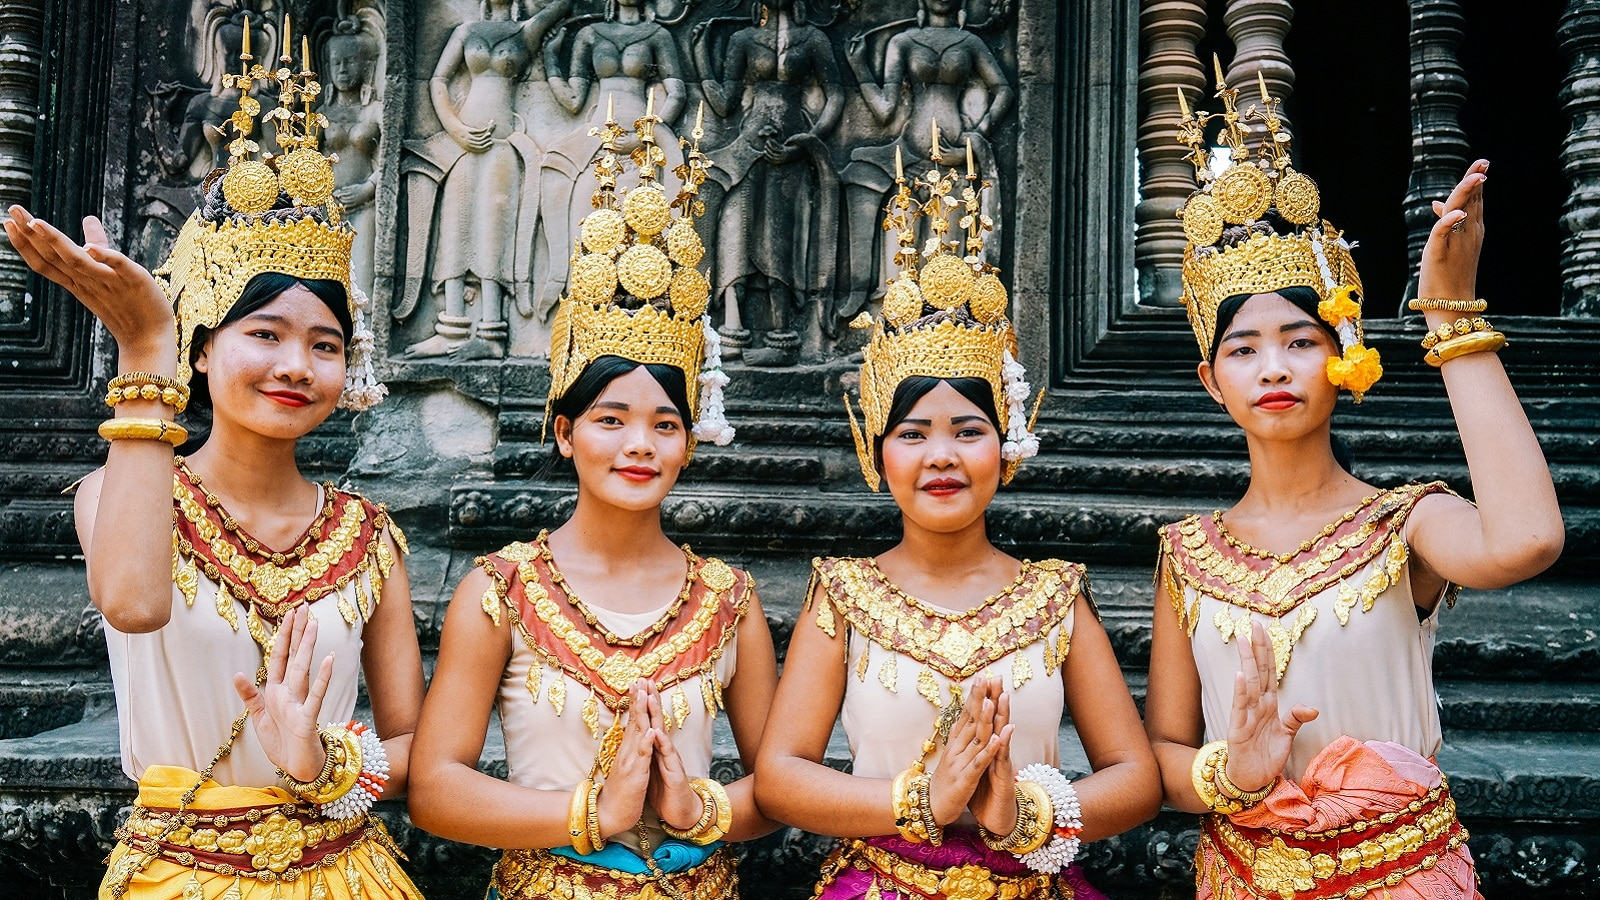 joint-trails-apsara-dancers-at-angkor